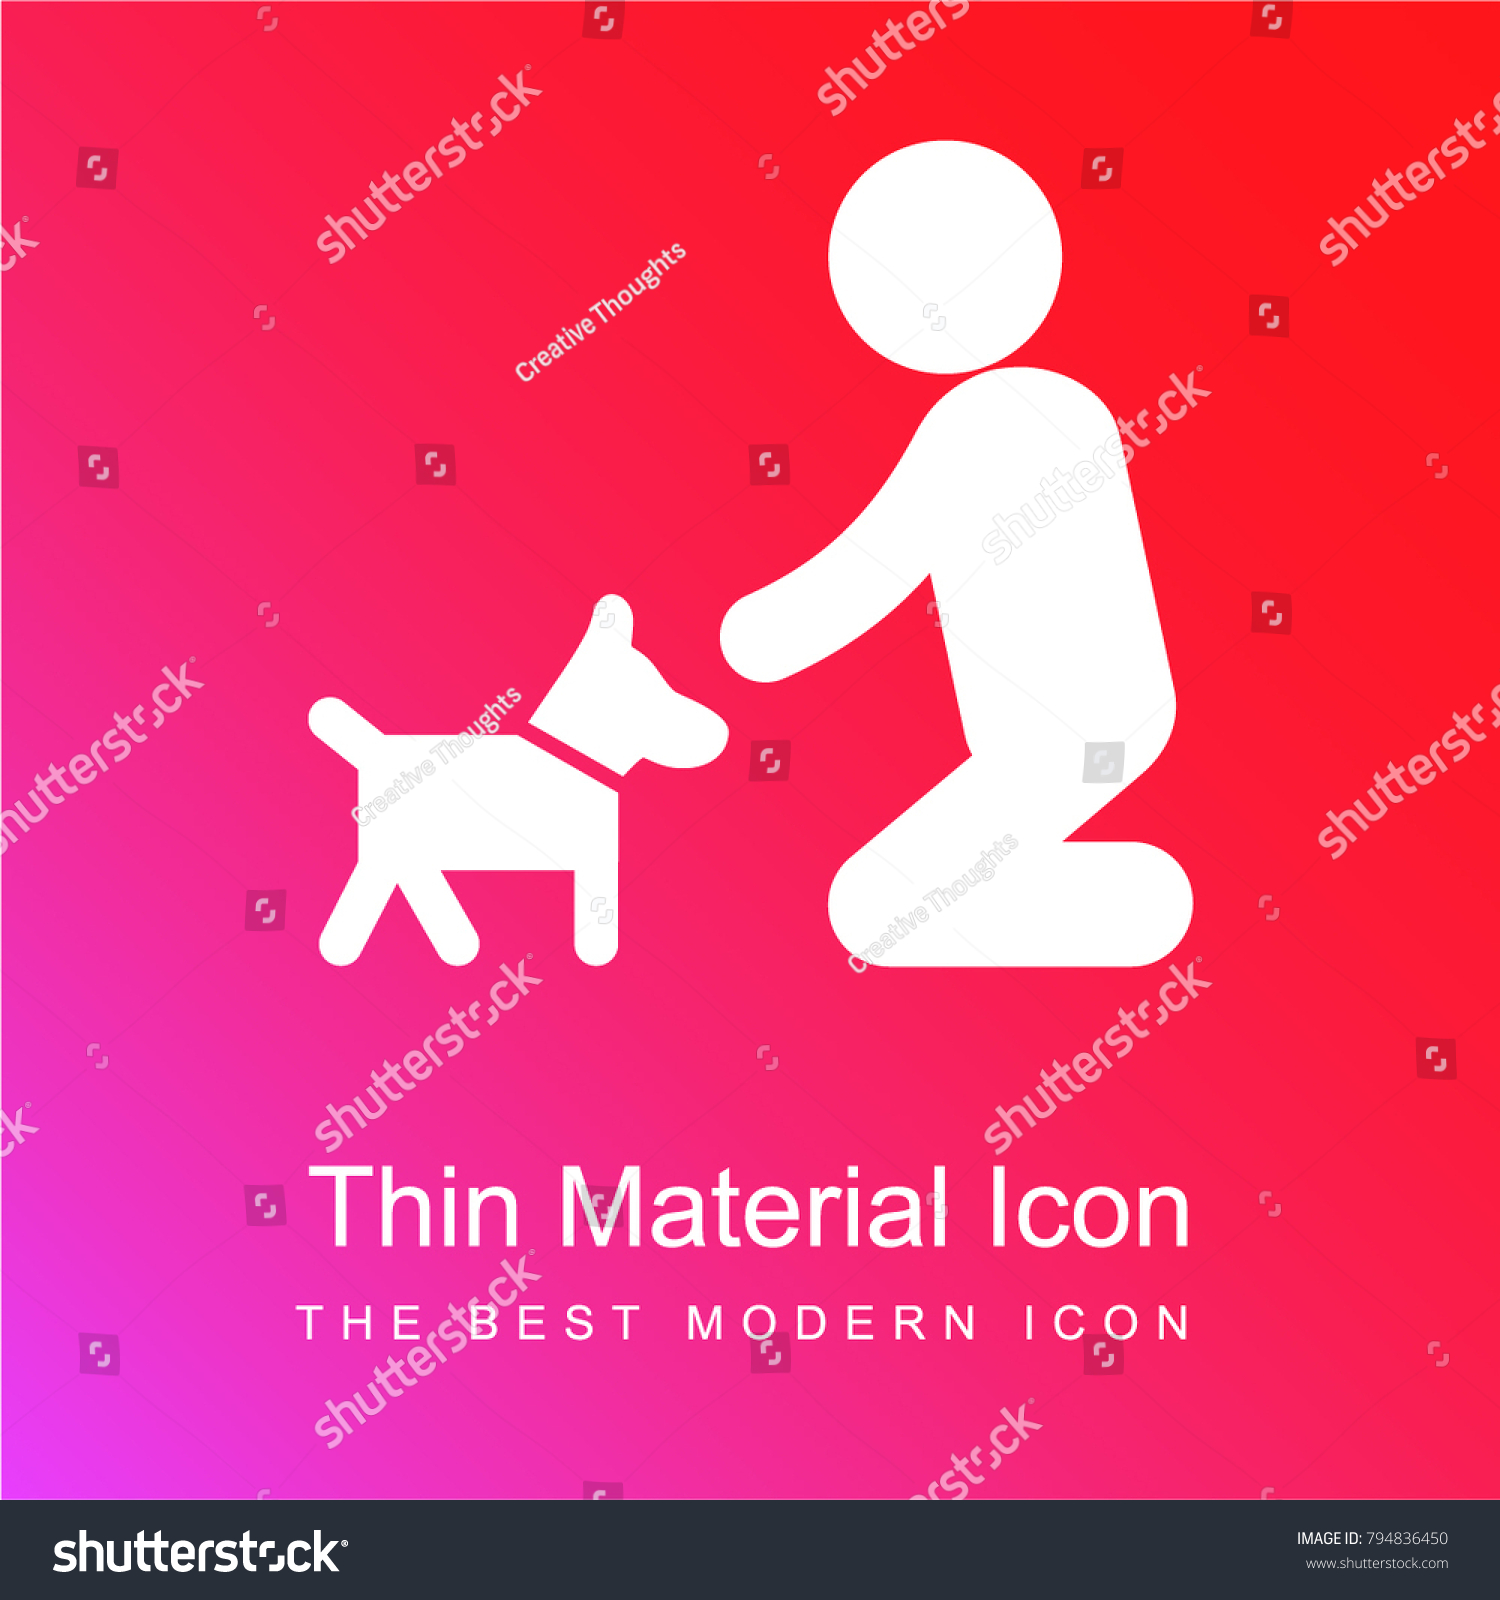 Man on his knees cuddle his stock vector 794836450 shutterstock man on his knees to cuddle his dog red and pink gradient material white icon minimal biocorpaavc Gallery